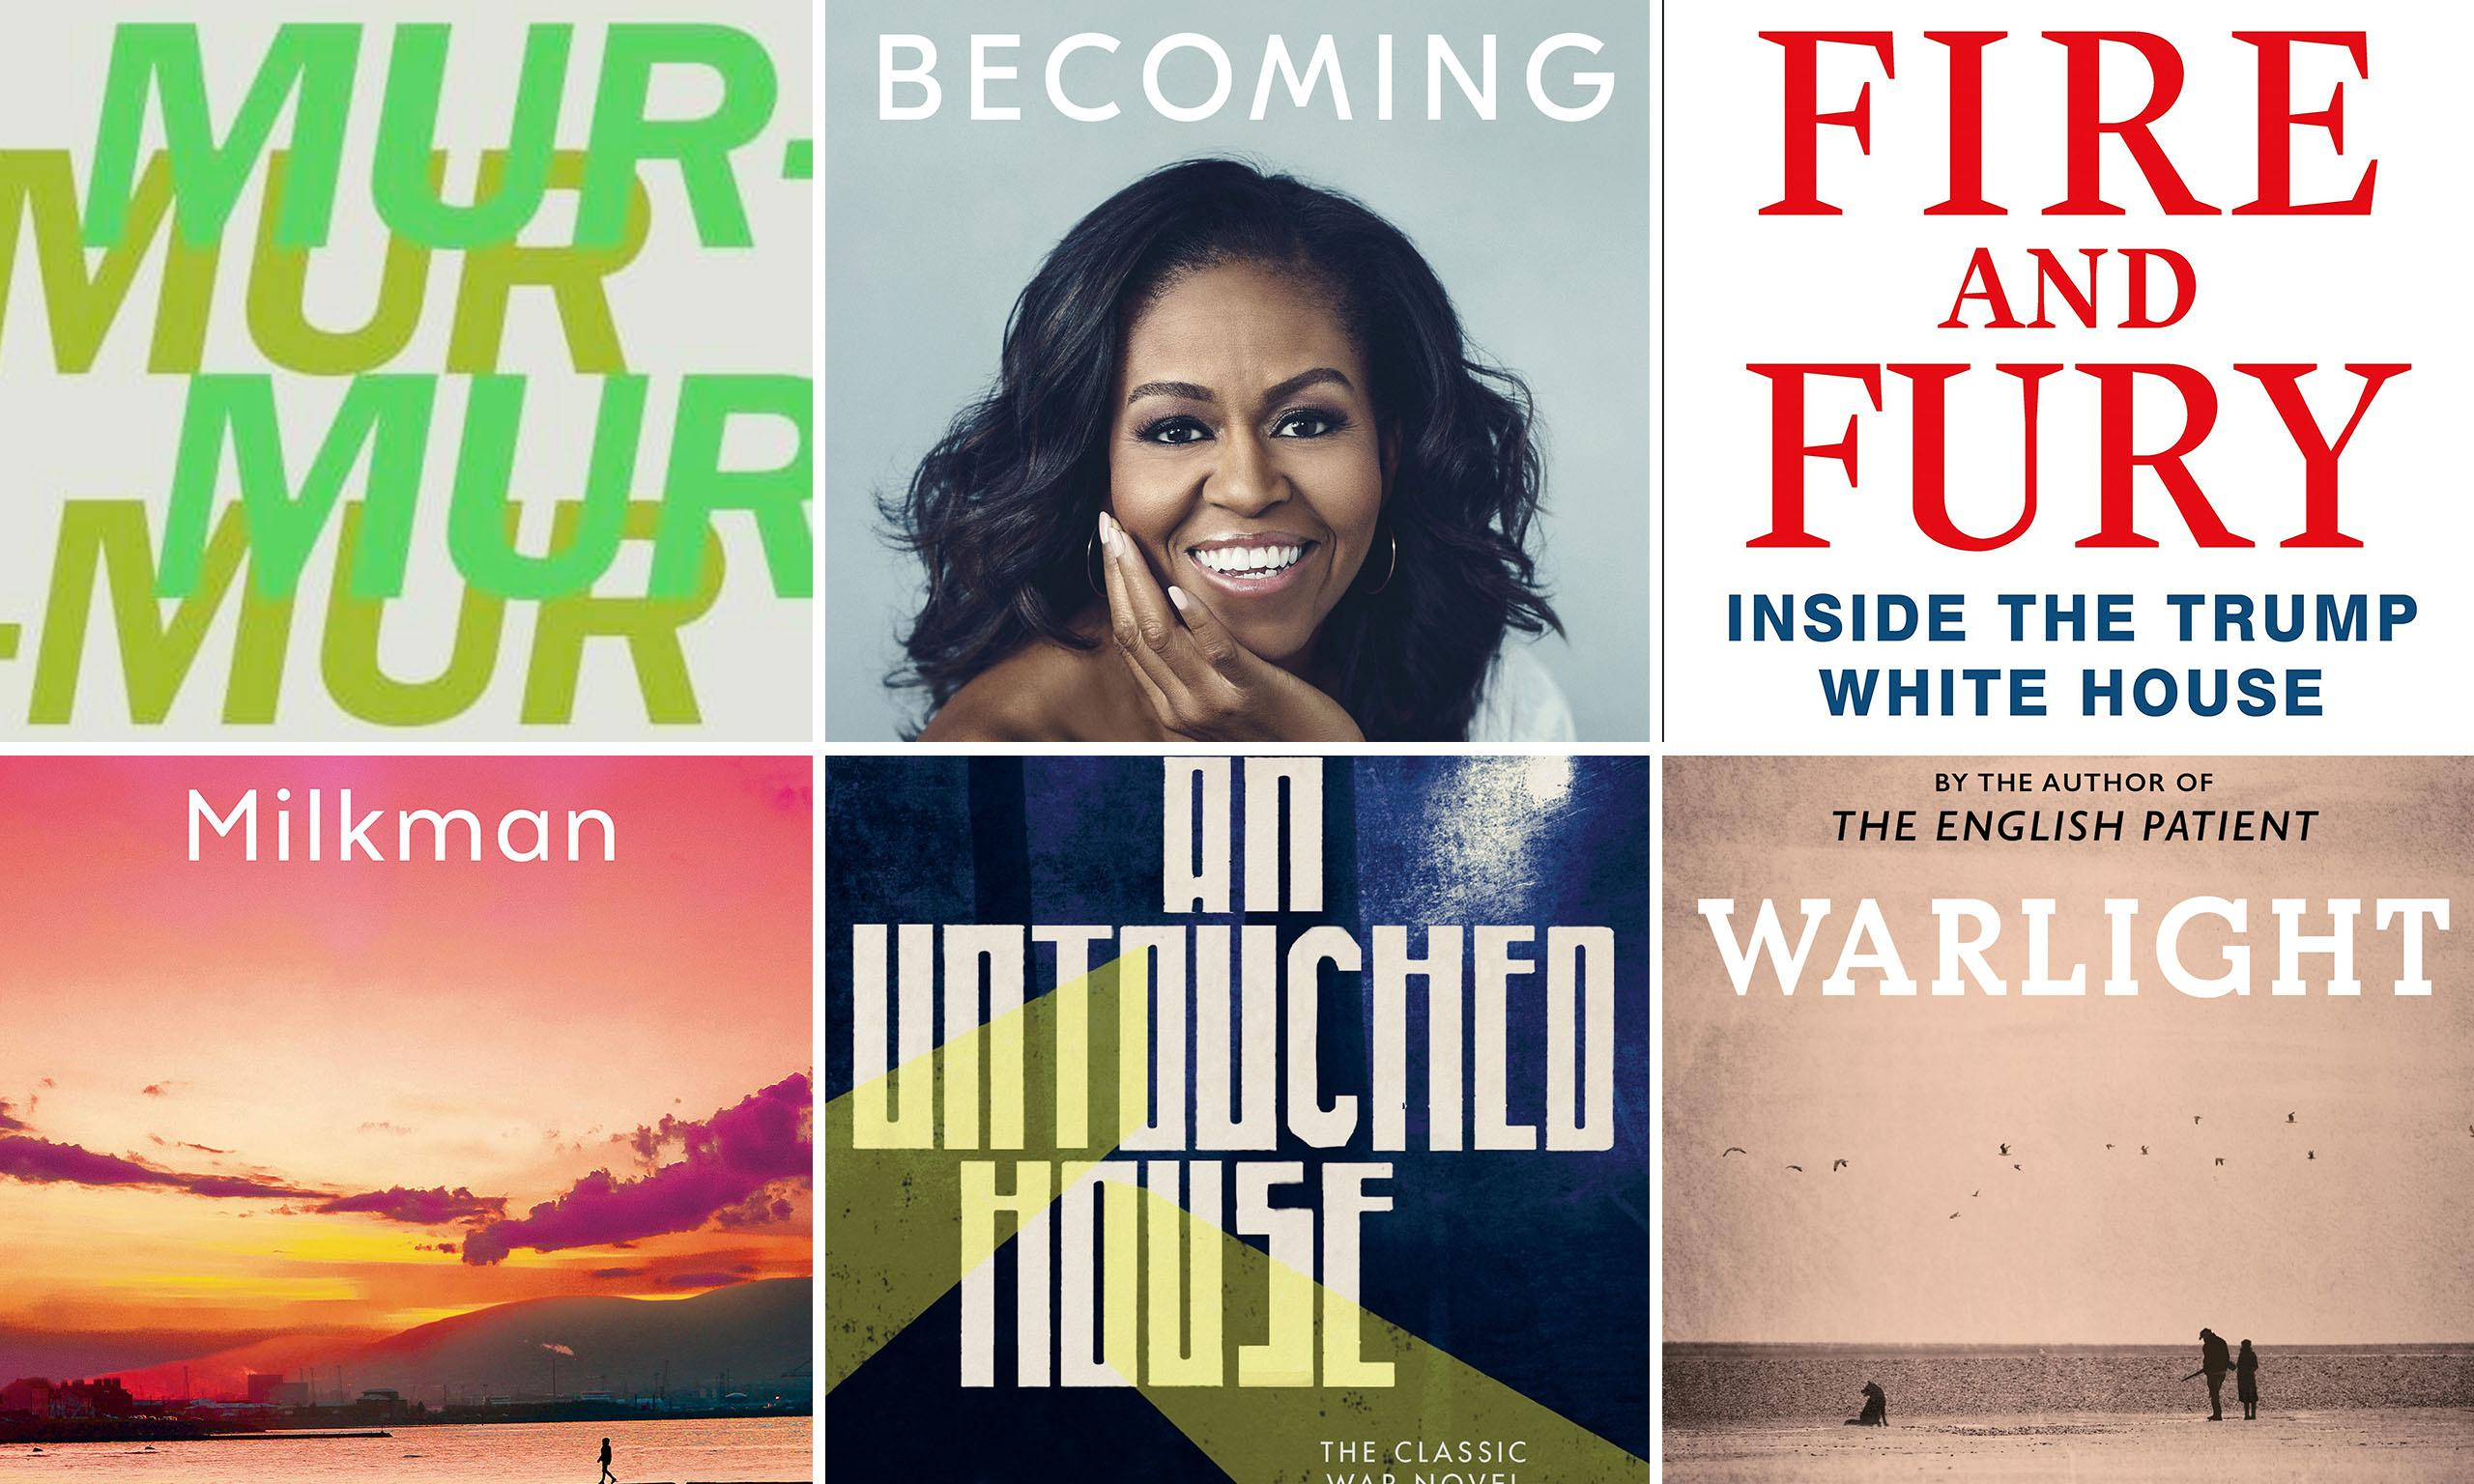 Choose your book of 2018 for us to read this December